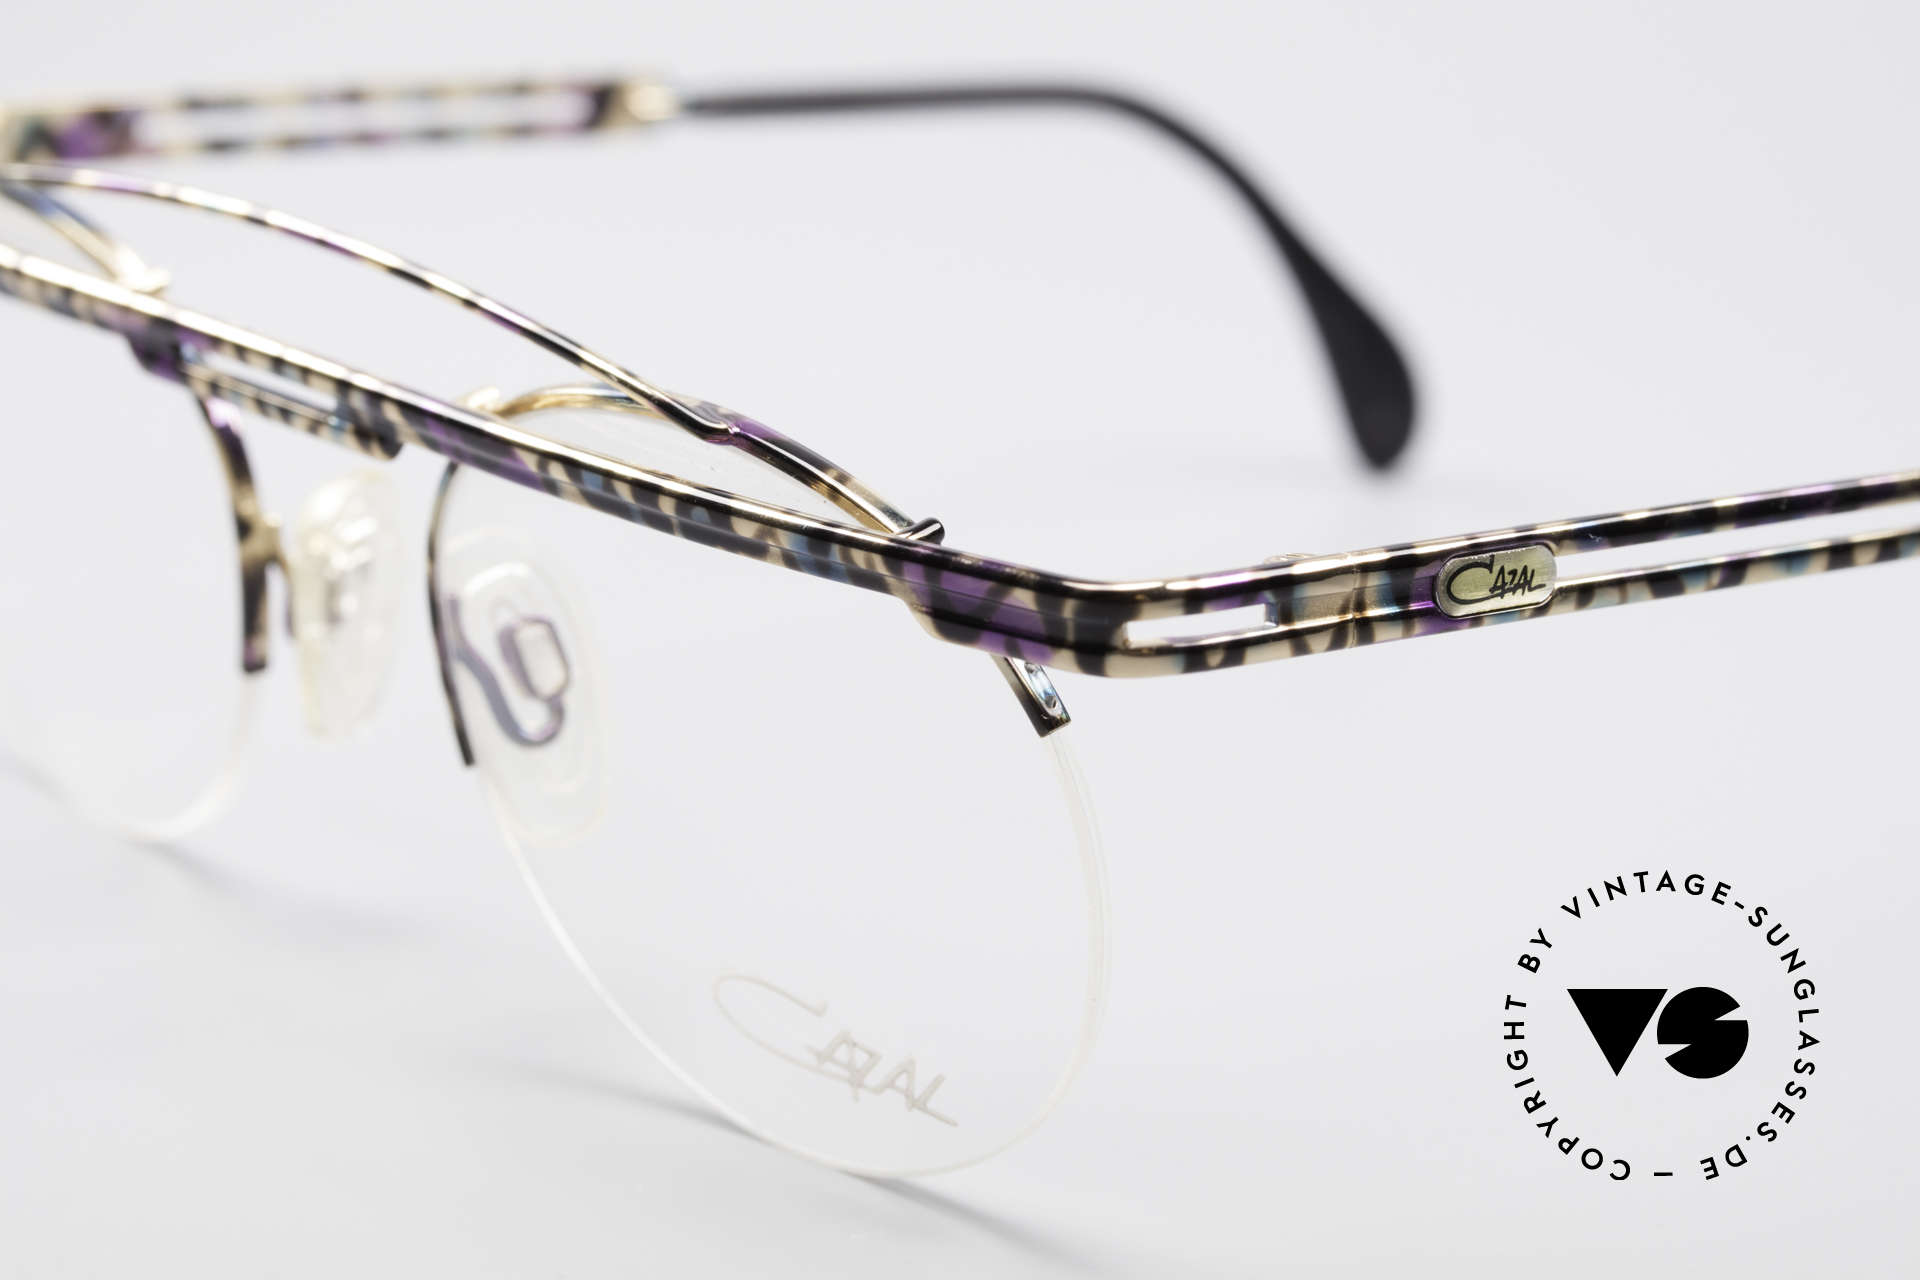 Cazal 748 Crazy Vintage No Retro Frame, color description in the old catalog: petrol/aubergine/black, Made for Men and Women